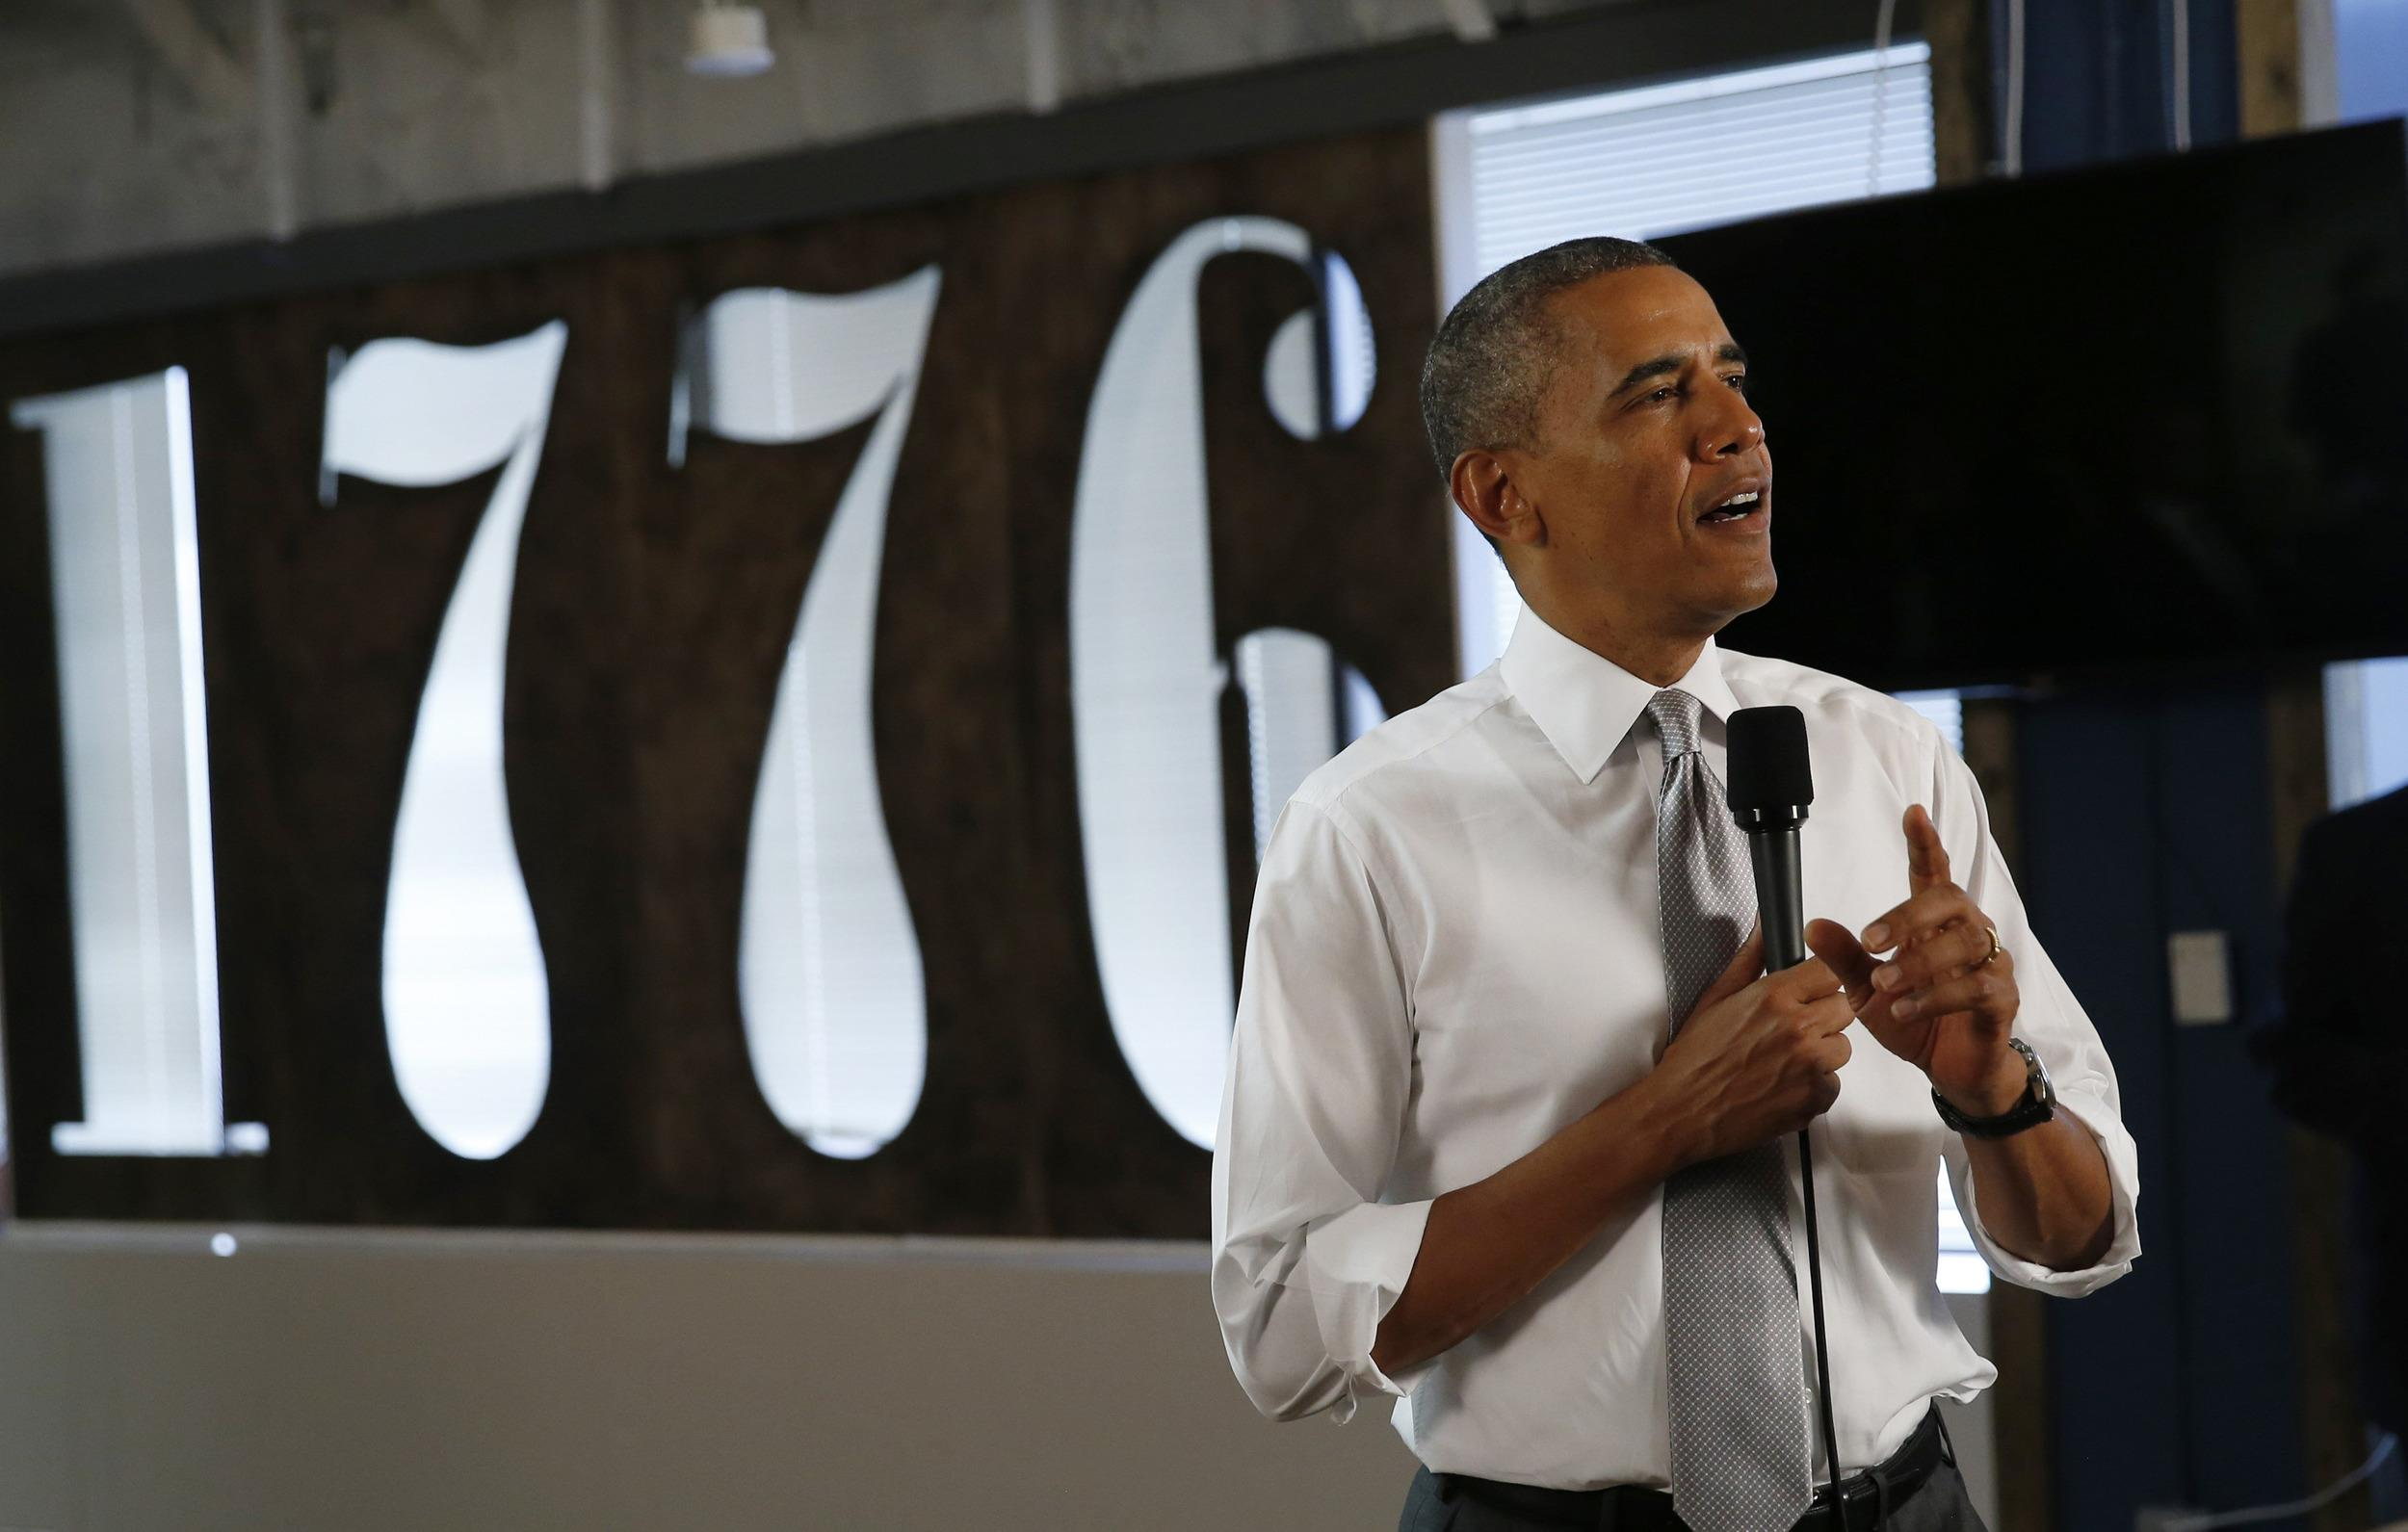 Image: U.S. President Obama speaks about the job numbers and the economy during a visit to 1776, a tech startup hub, in Washington